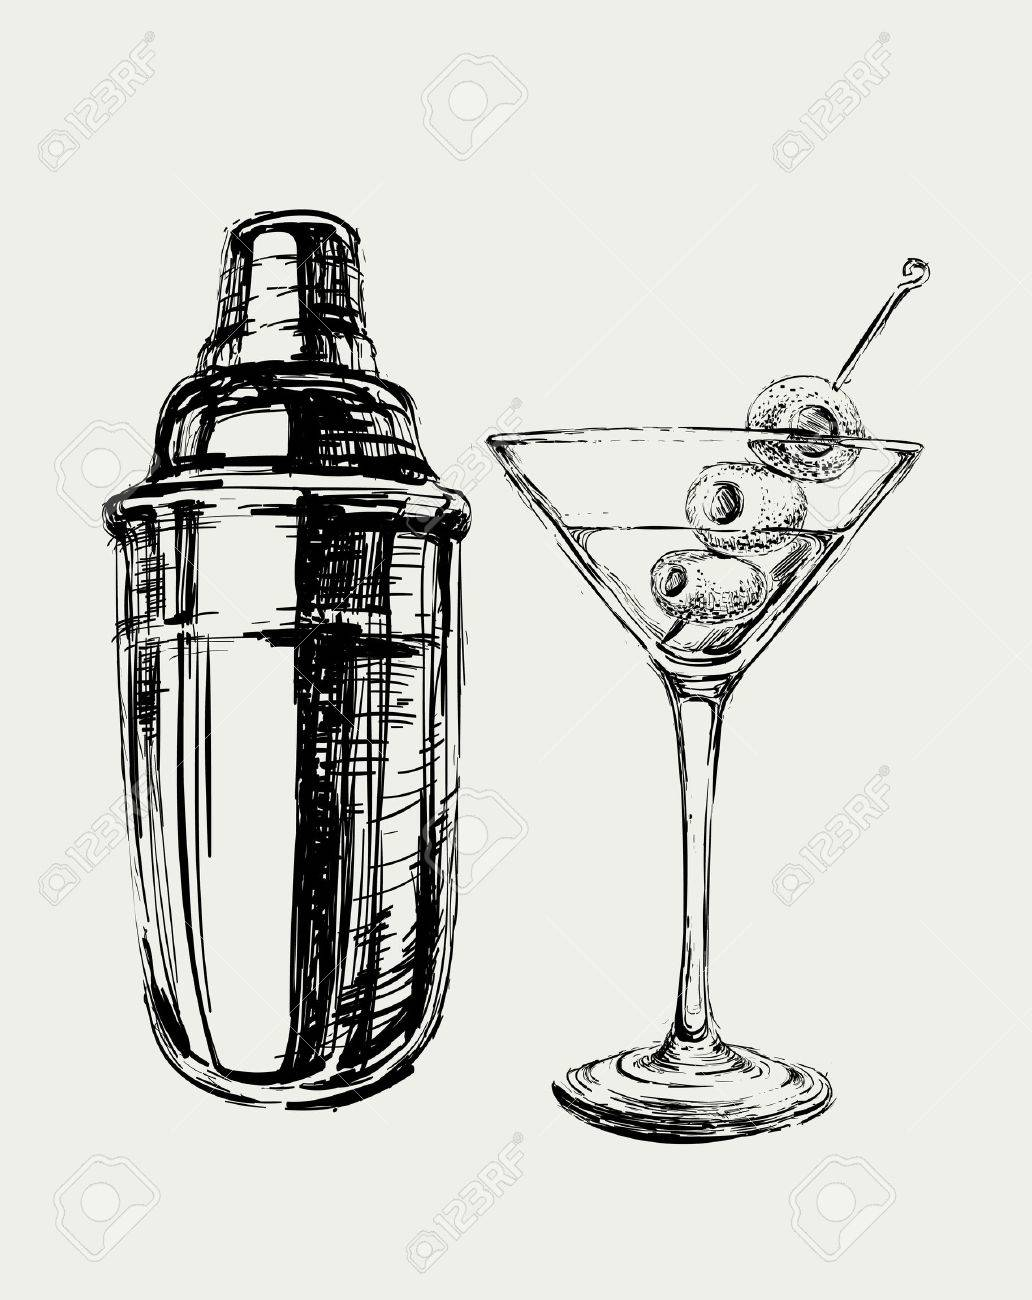 Sketch Martini Cocktails with Olives and Shaker Vector Hand Drawn Illustration - 47099293